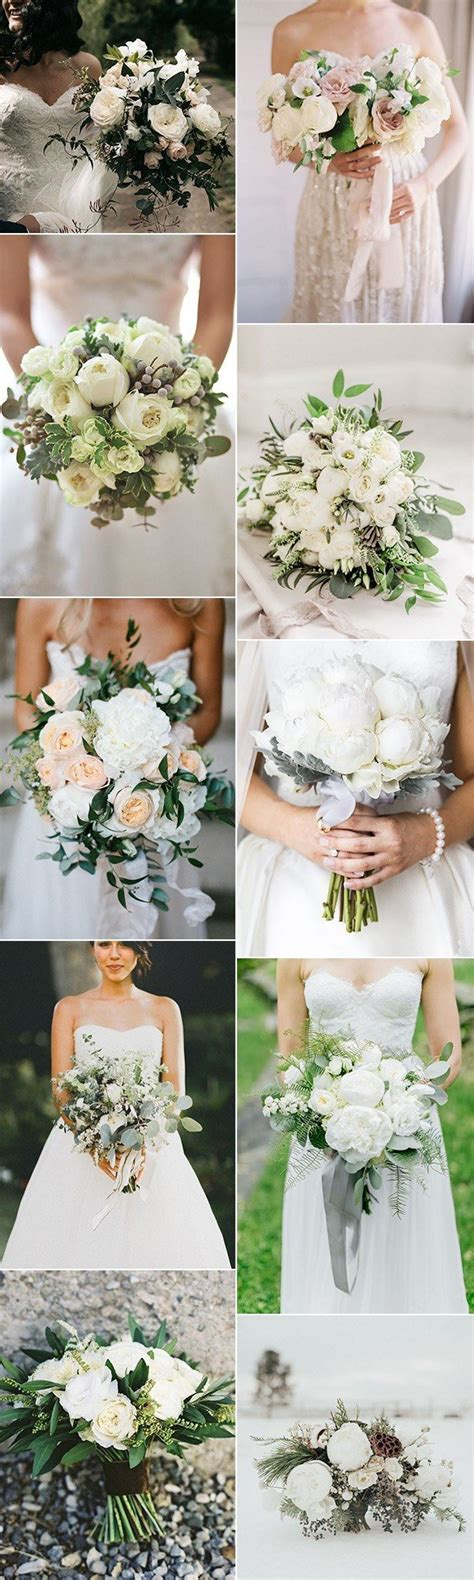 Wedding Bouquet Trends 2018 by 18 Charming Neutral Wedding Bouquets For 2018 Trends Oh